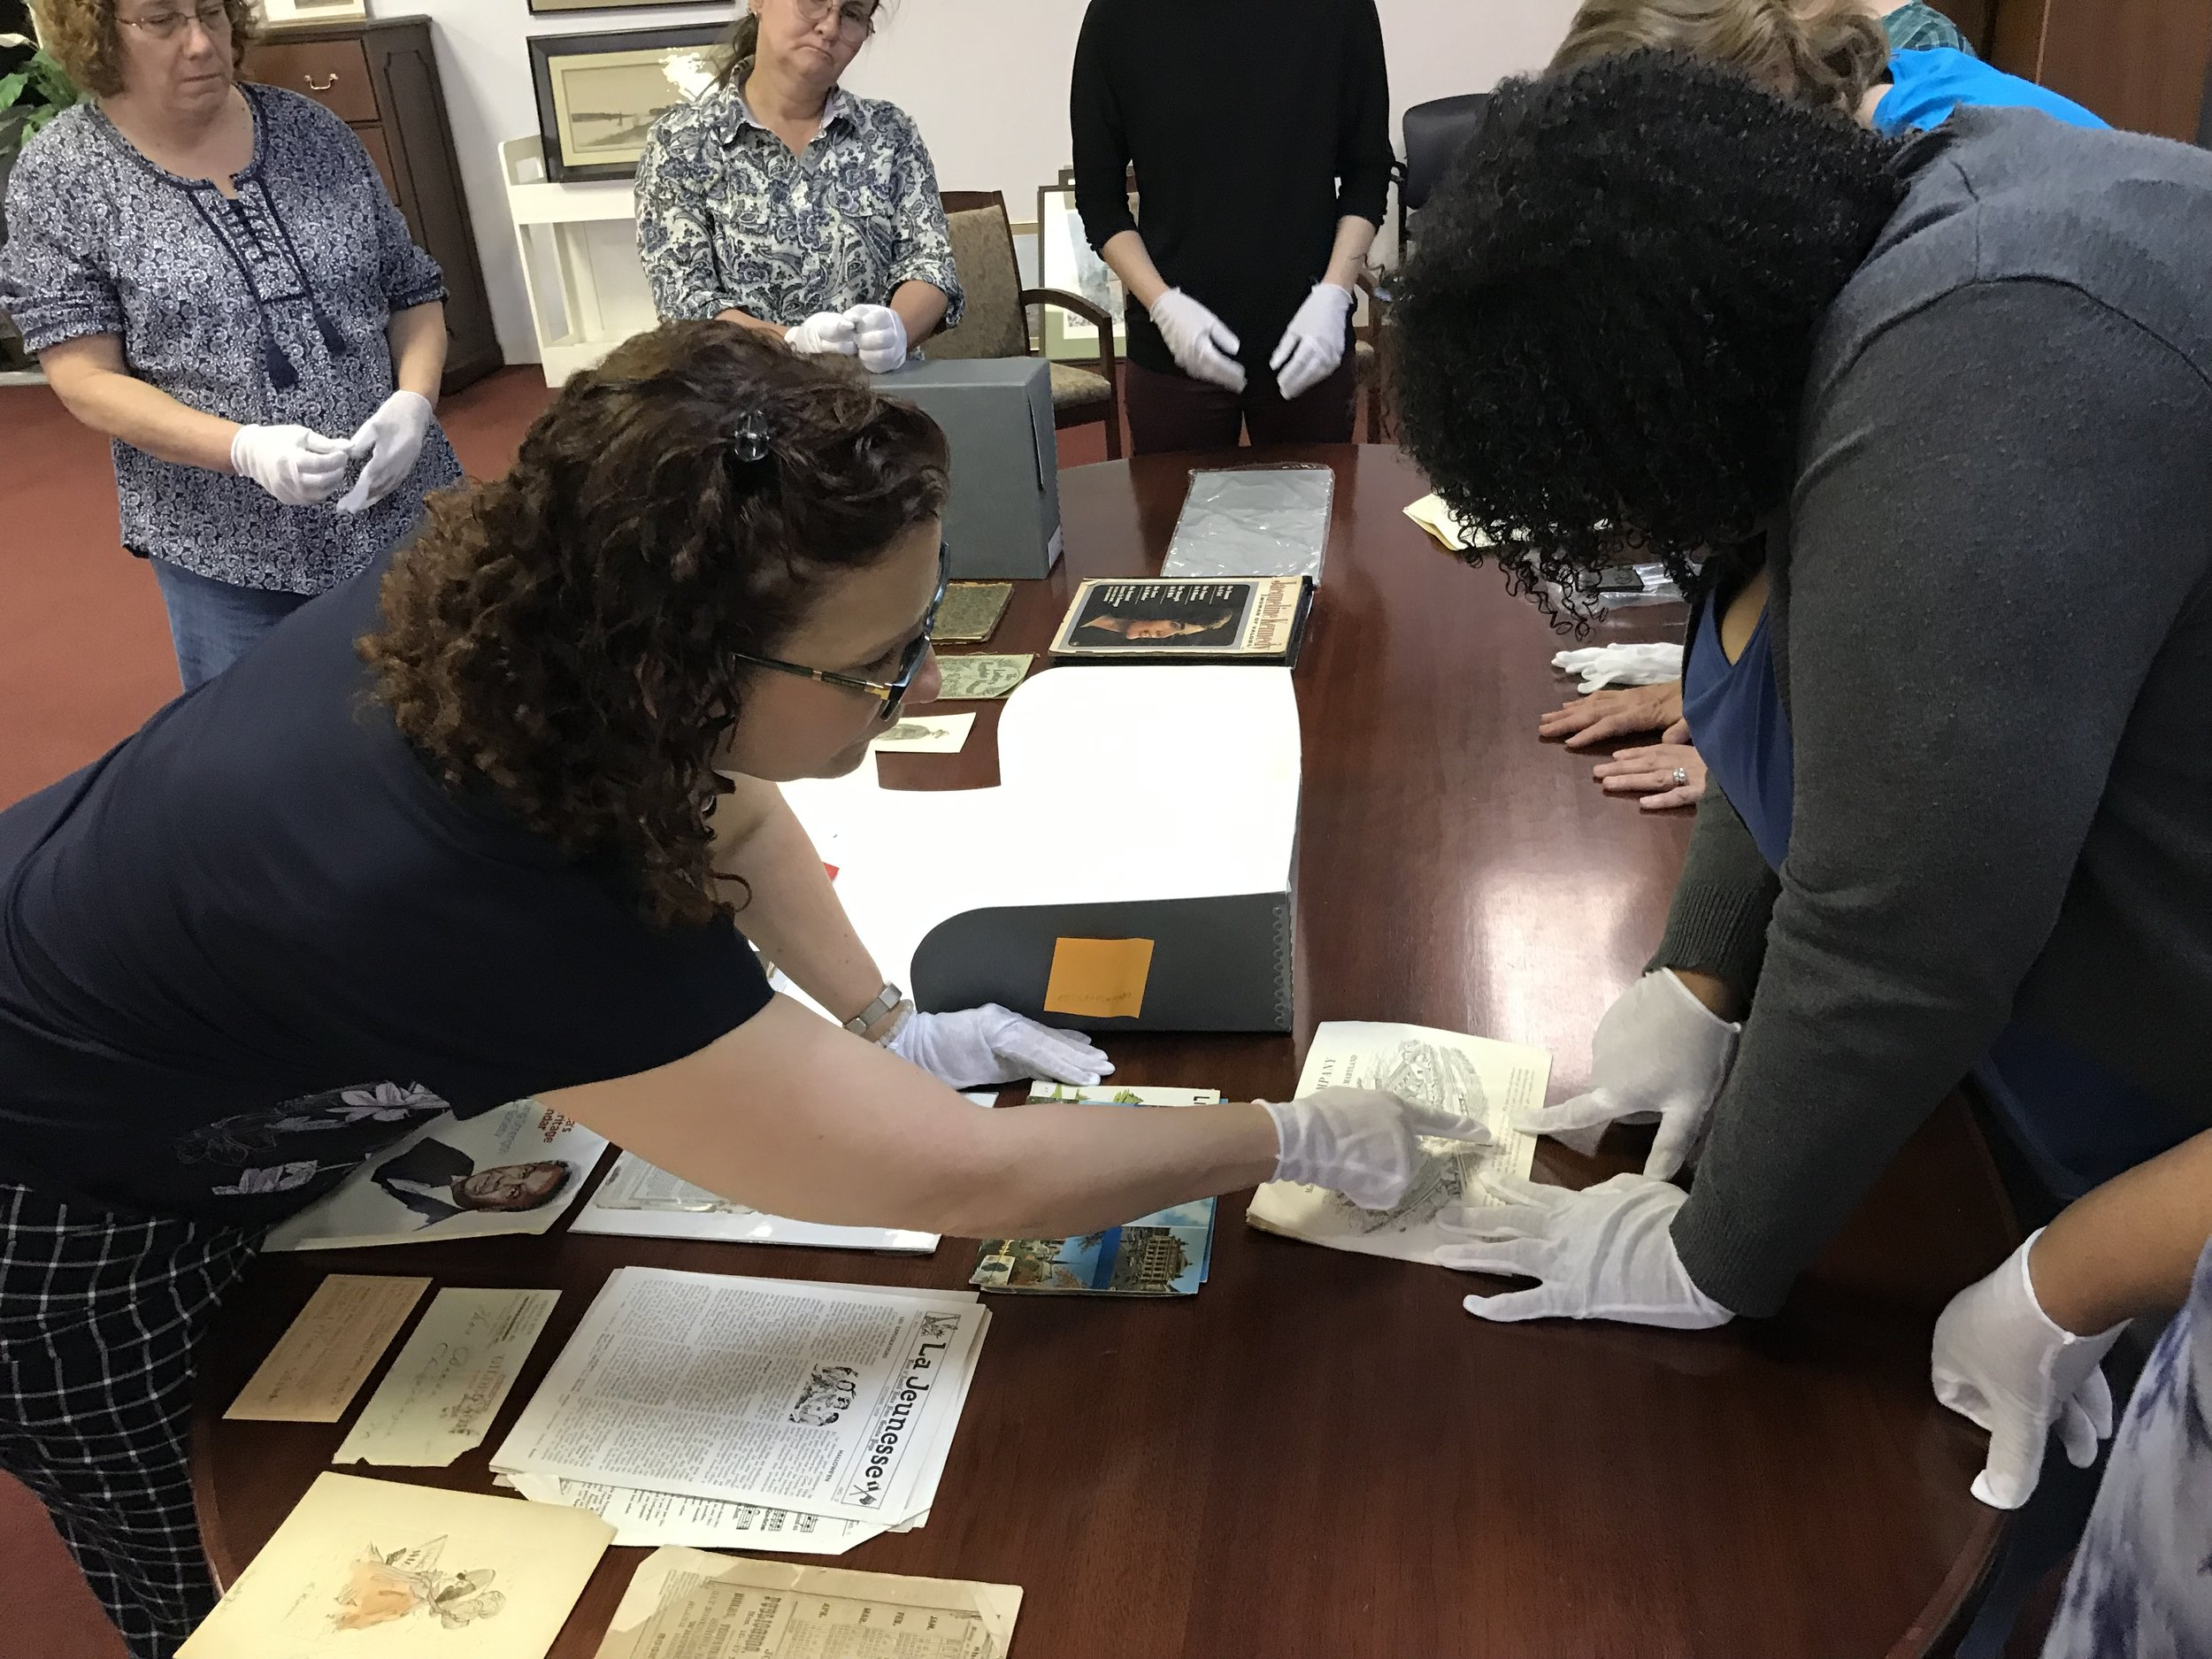 Leigh Grinstead, an archival consultant from Lyrasis, trains library staff member, Jazmine Collins, in techniques for handling and storing historic papers.